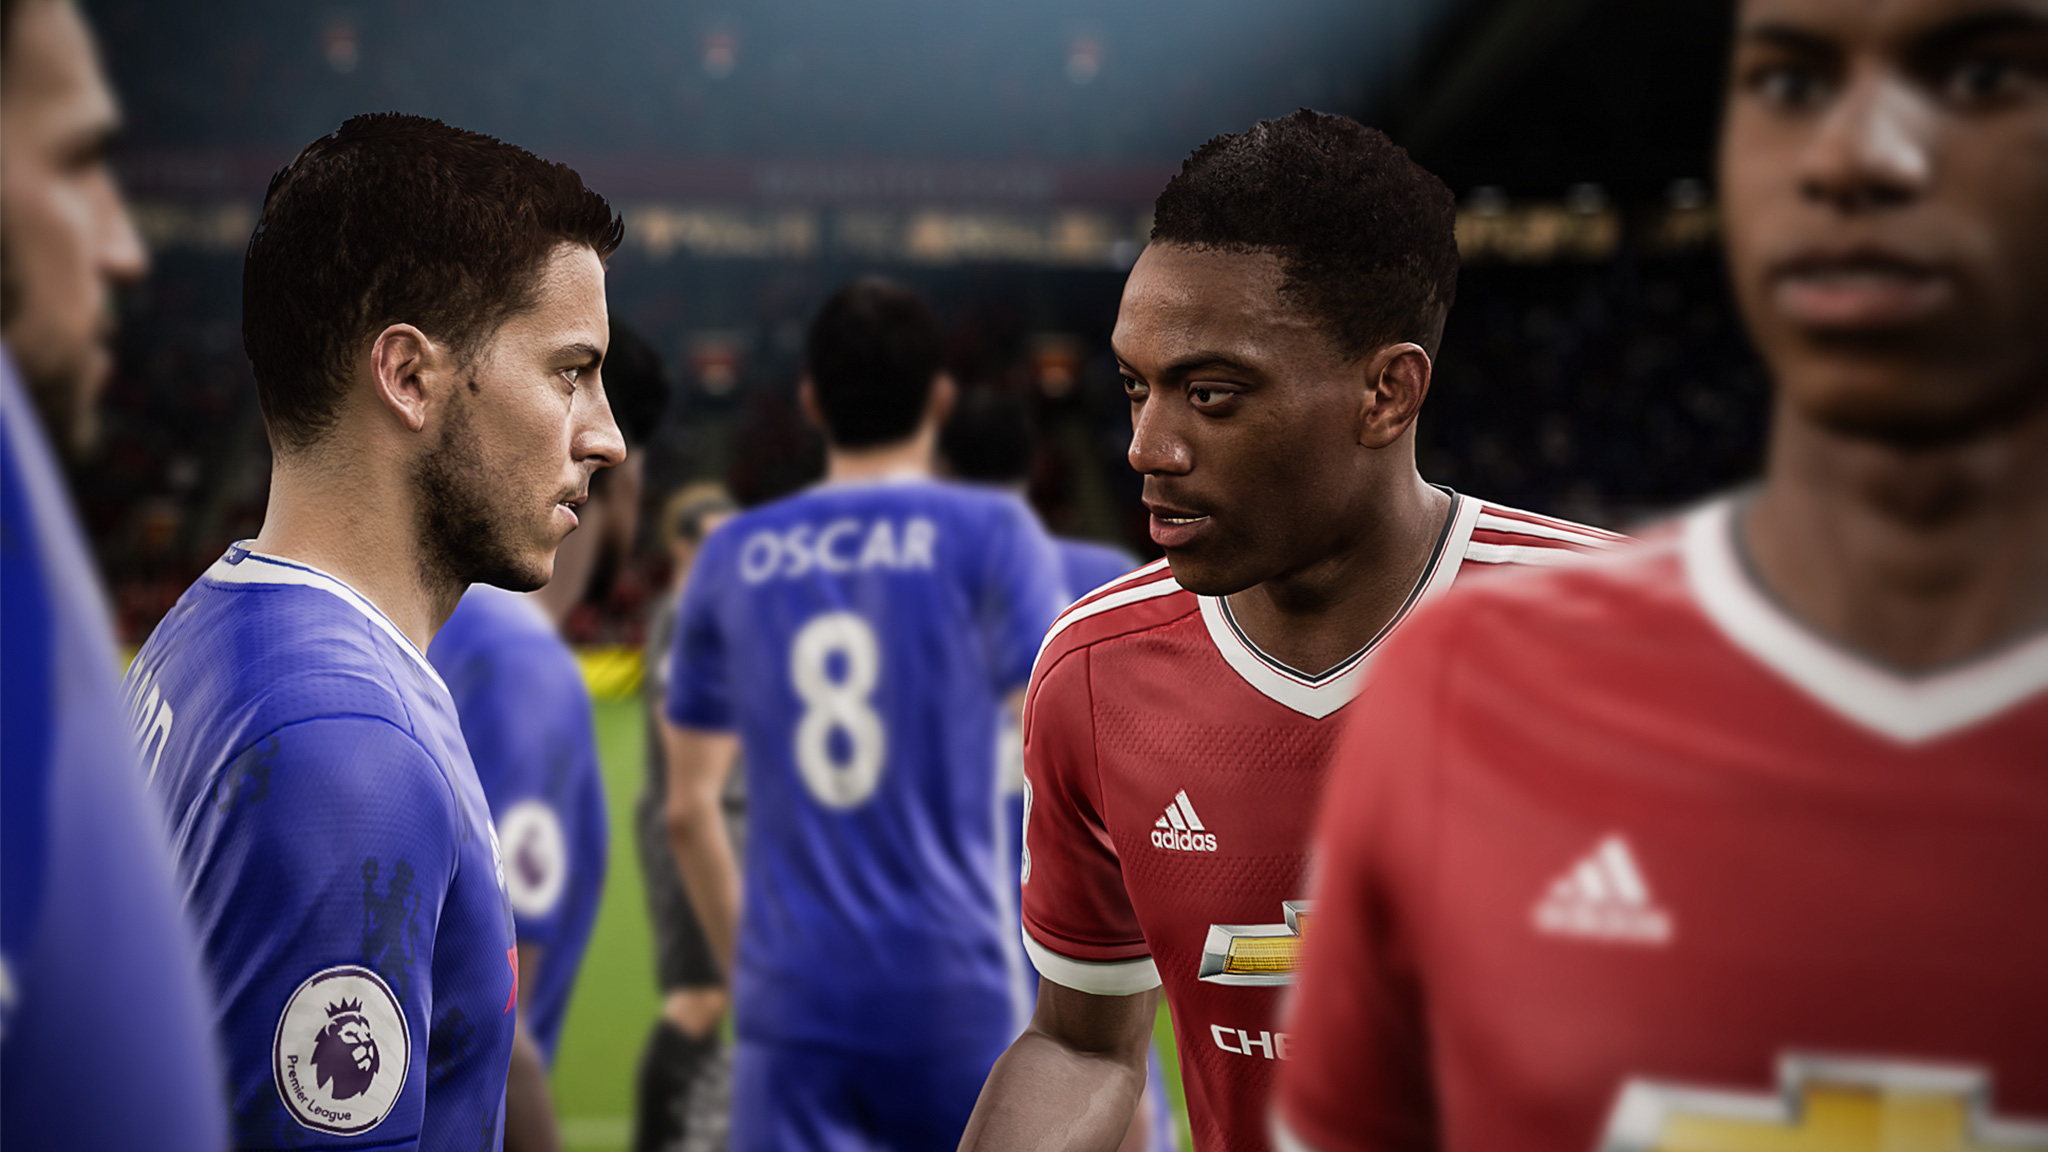 New FIFA ambassador's Anthony Martial and Eden Hazard meet on the pitch